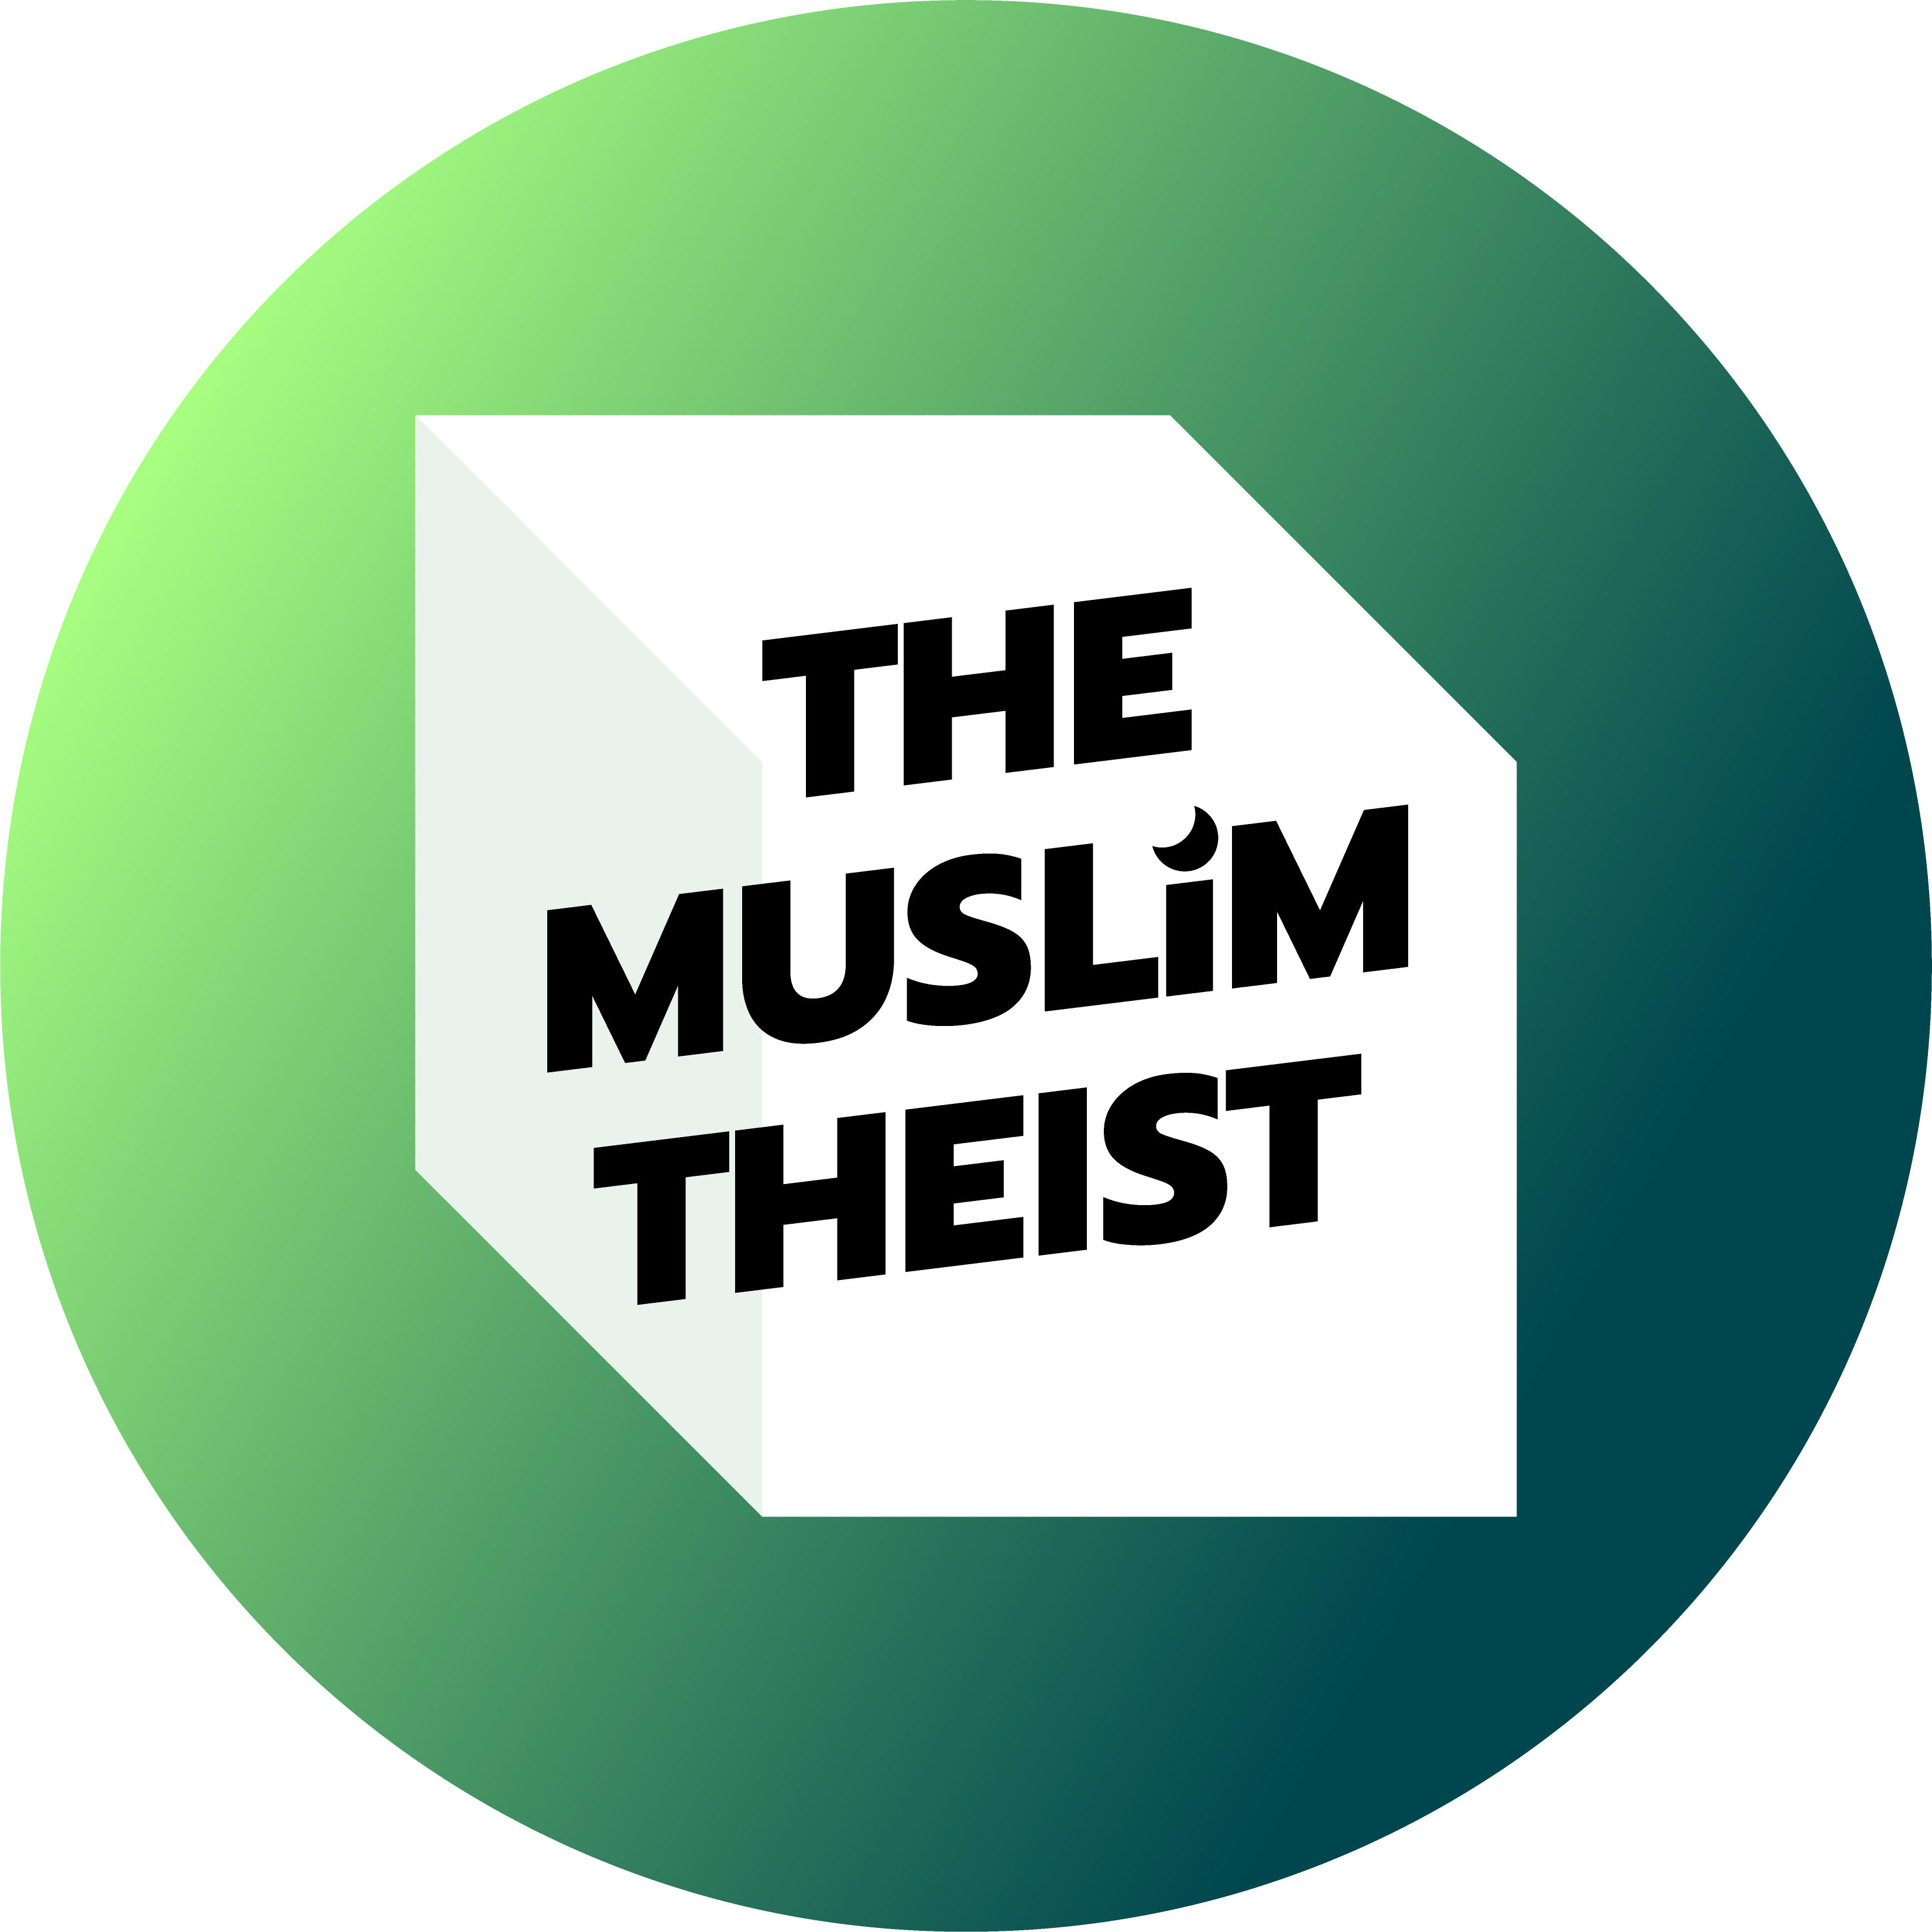 The Muslim Theist